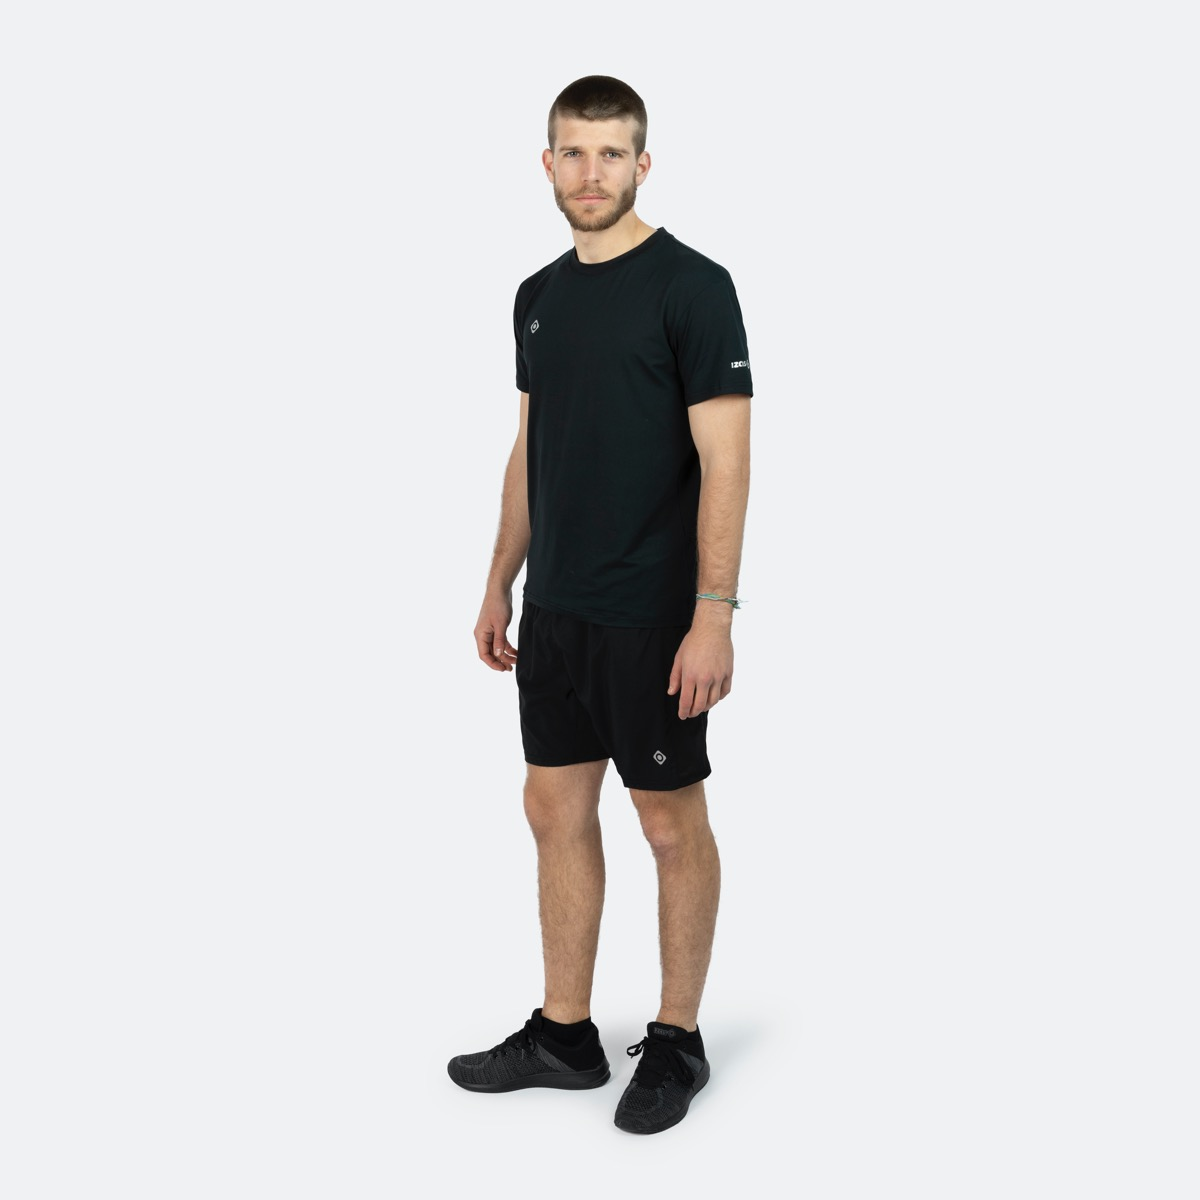 MAN'S ANYOX SHORT SLEEVE T-SHIRT BLACK